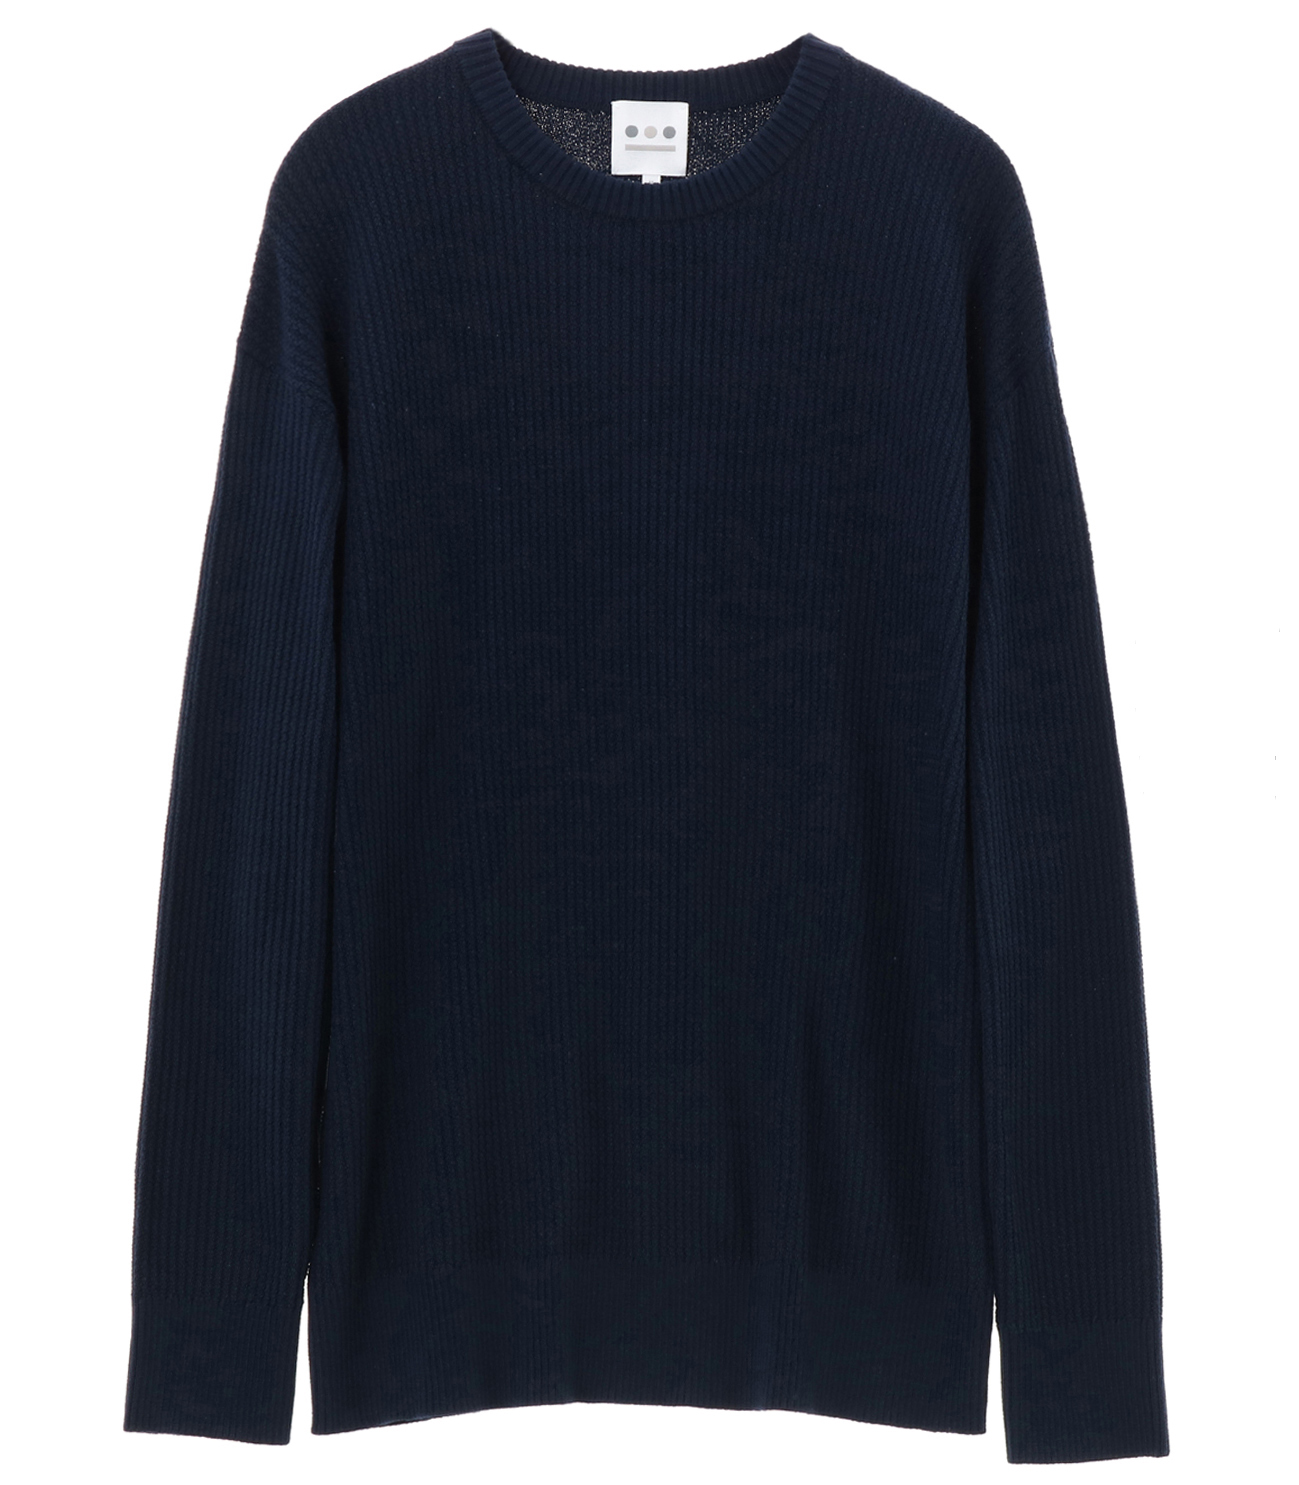 cool max waffle l/s crew 詳細画像 navy 1